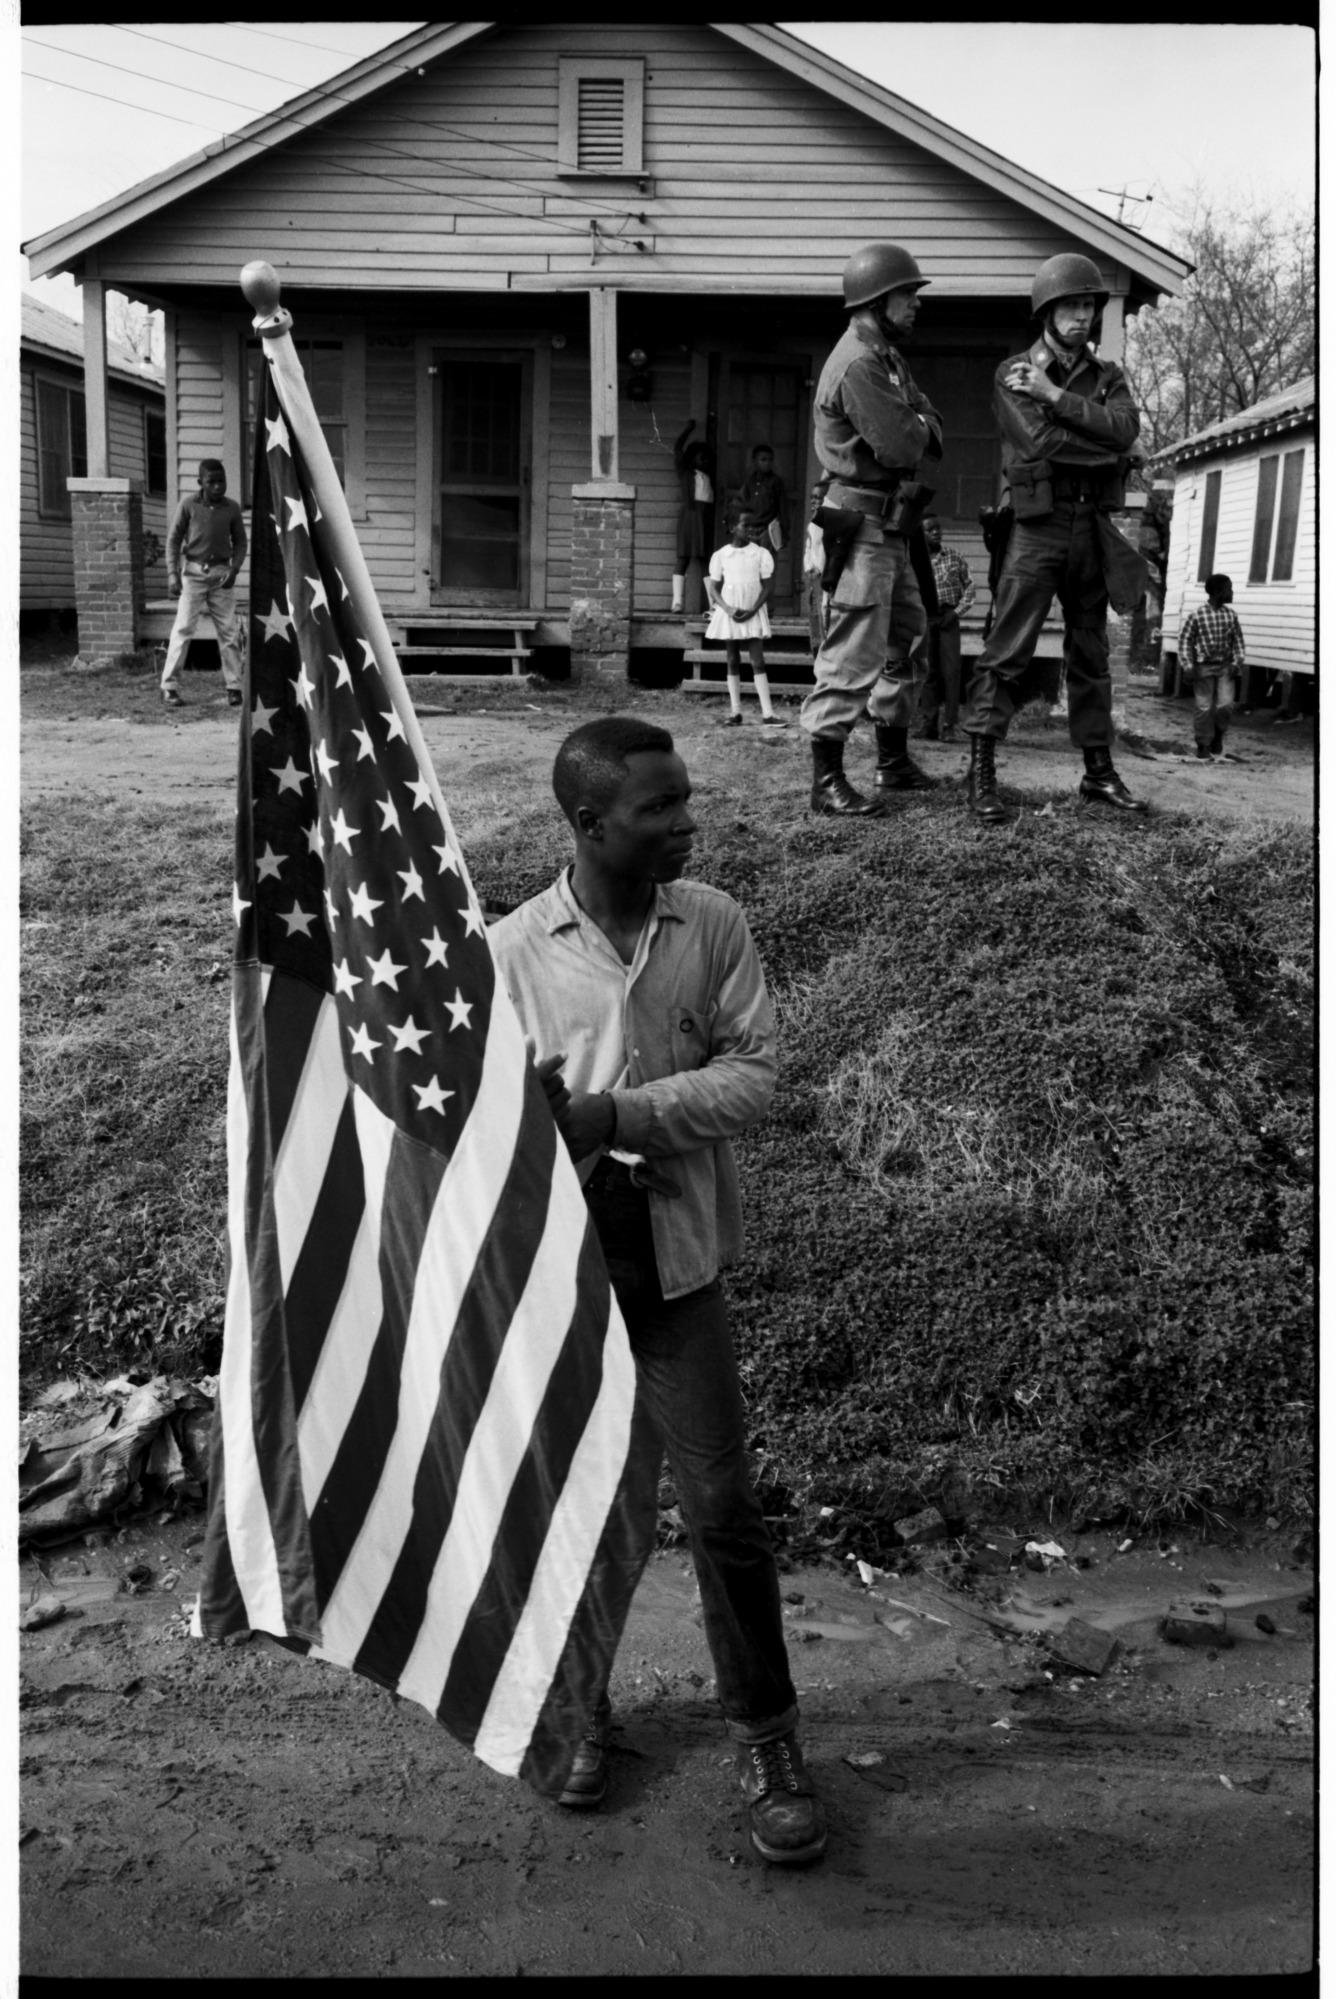 images for <I>Young Marcher, Selma to Montgomery March</I>